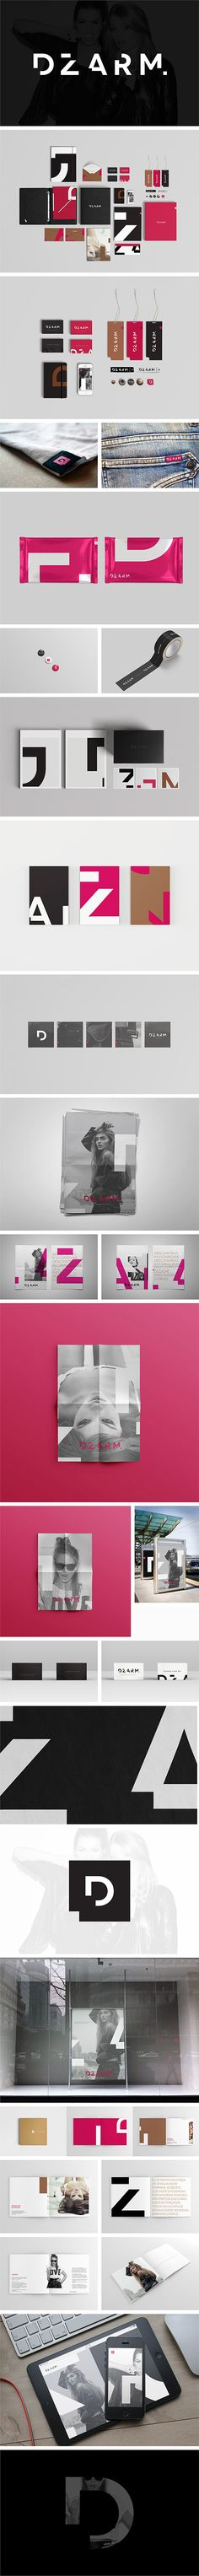 DZARM. – REBRANDING: Corporate Identity design system, Branding | Design by Diego Bellorin with Estúdio Colírio.